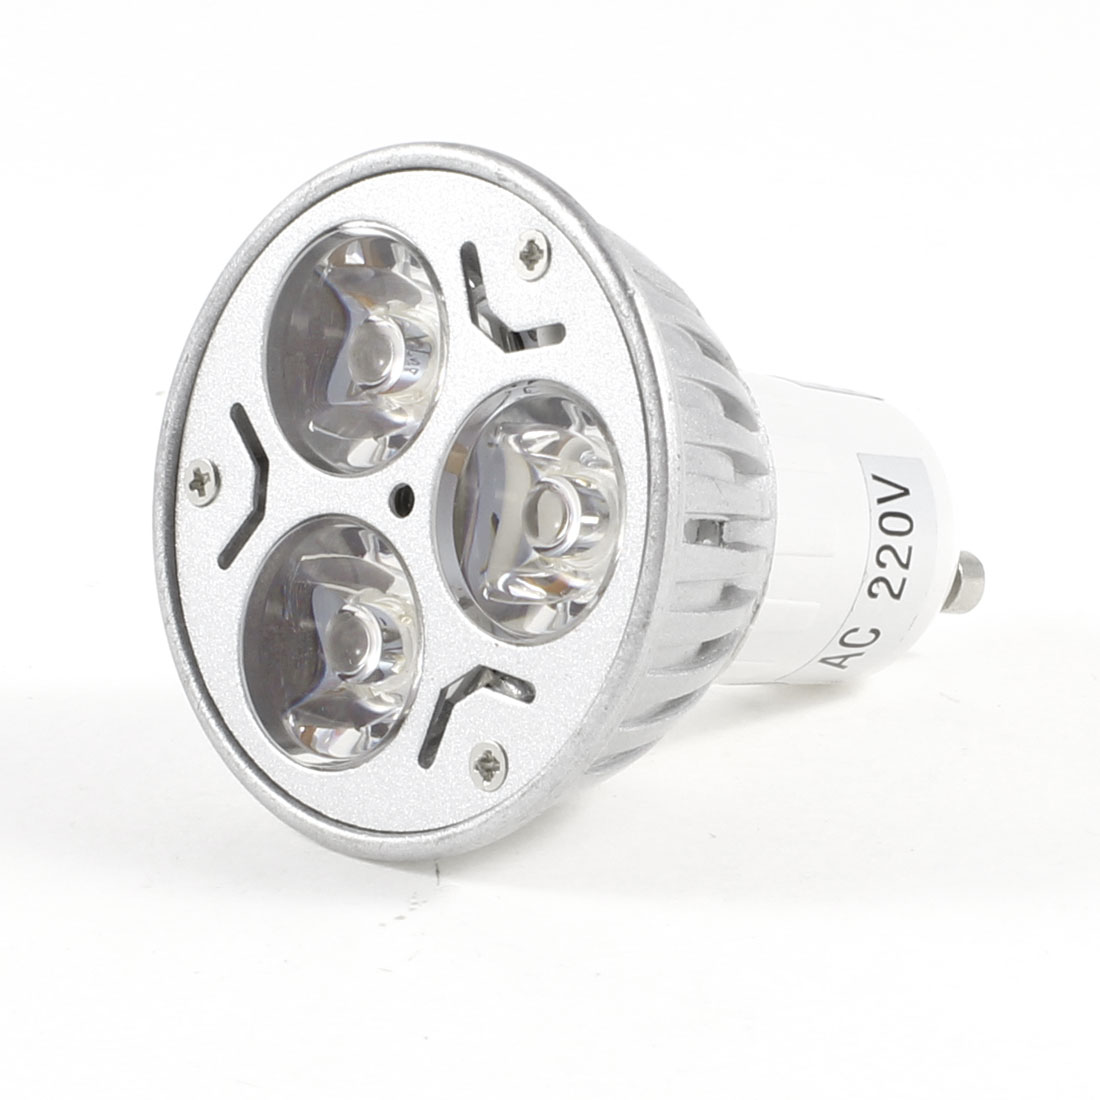 Indoor AC 220V 3W GU10 Socket 3 LEDs White Light Spotlight Bulb Lamp